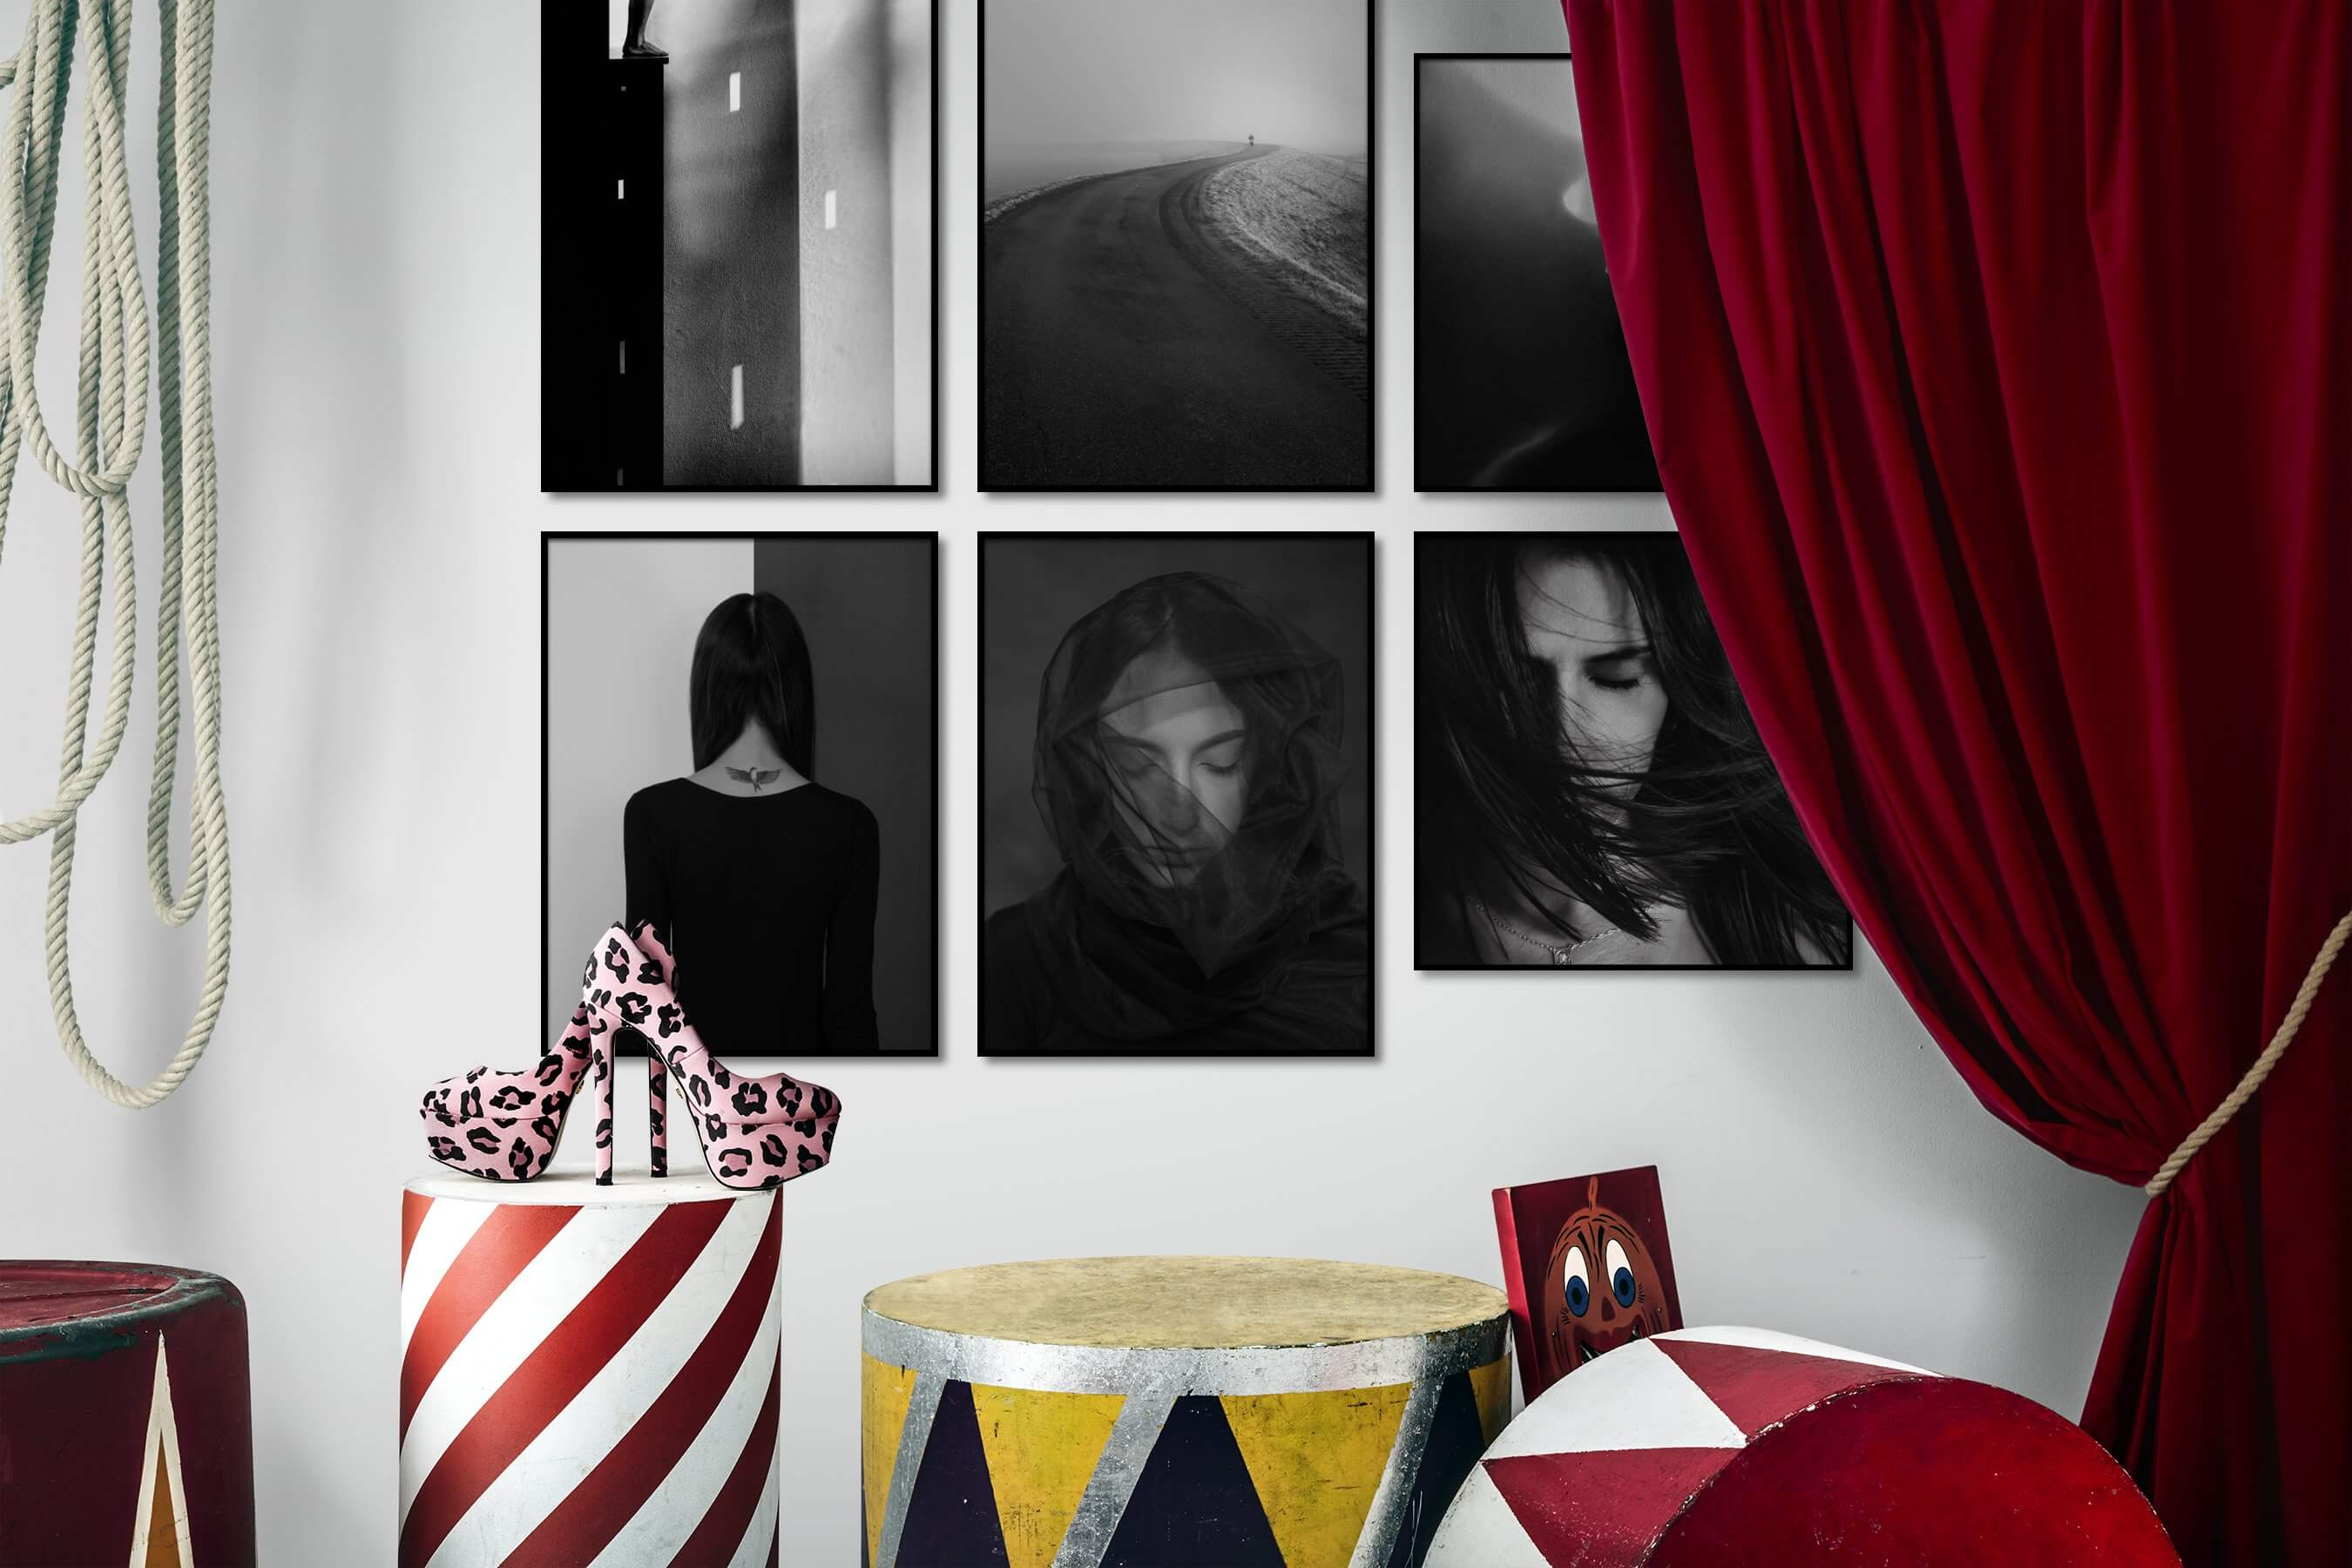 Gallery wall idea with six framed pictures arranged on a wall depicting Artsy, Black & White, For the Moderate, Country Life, and Fashion & Beauty